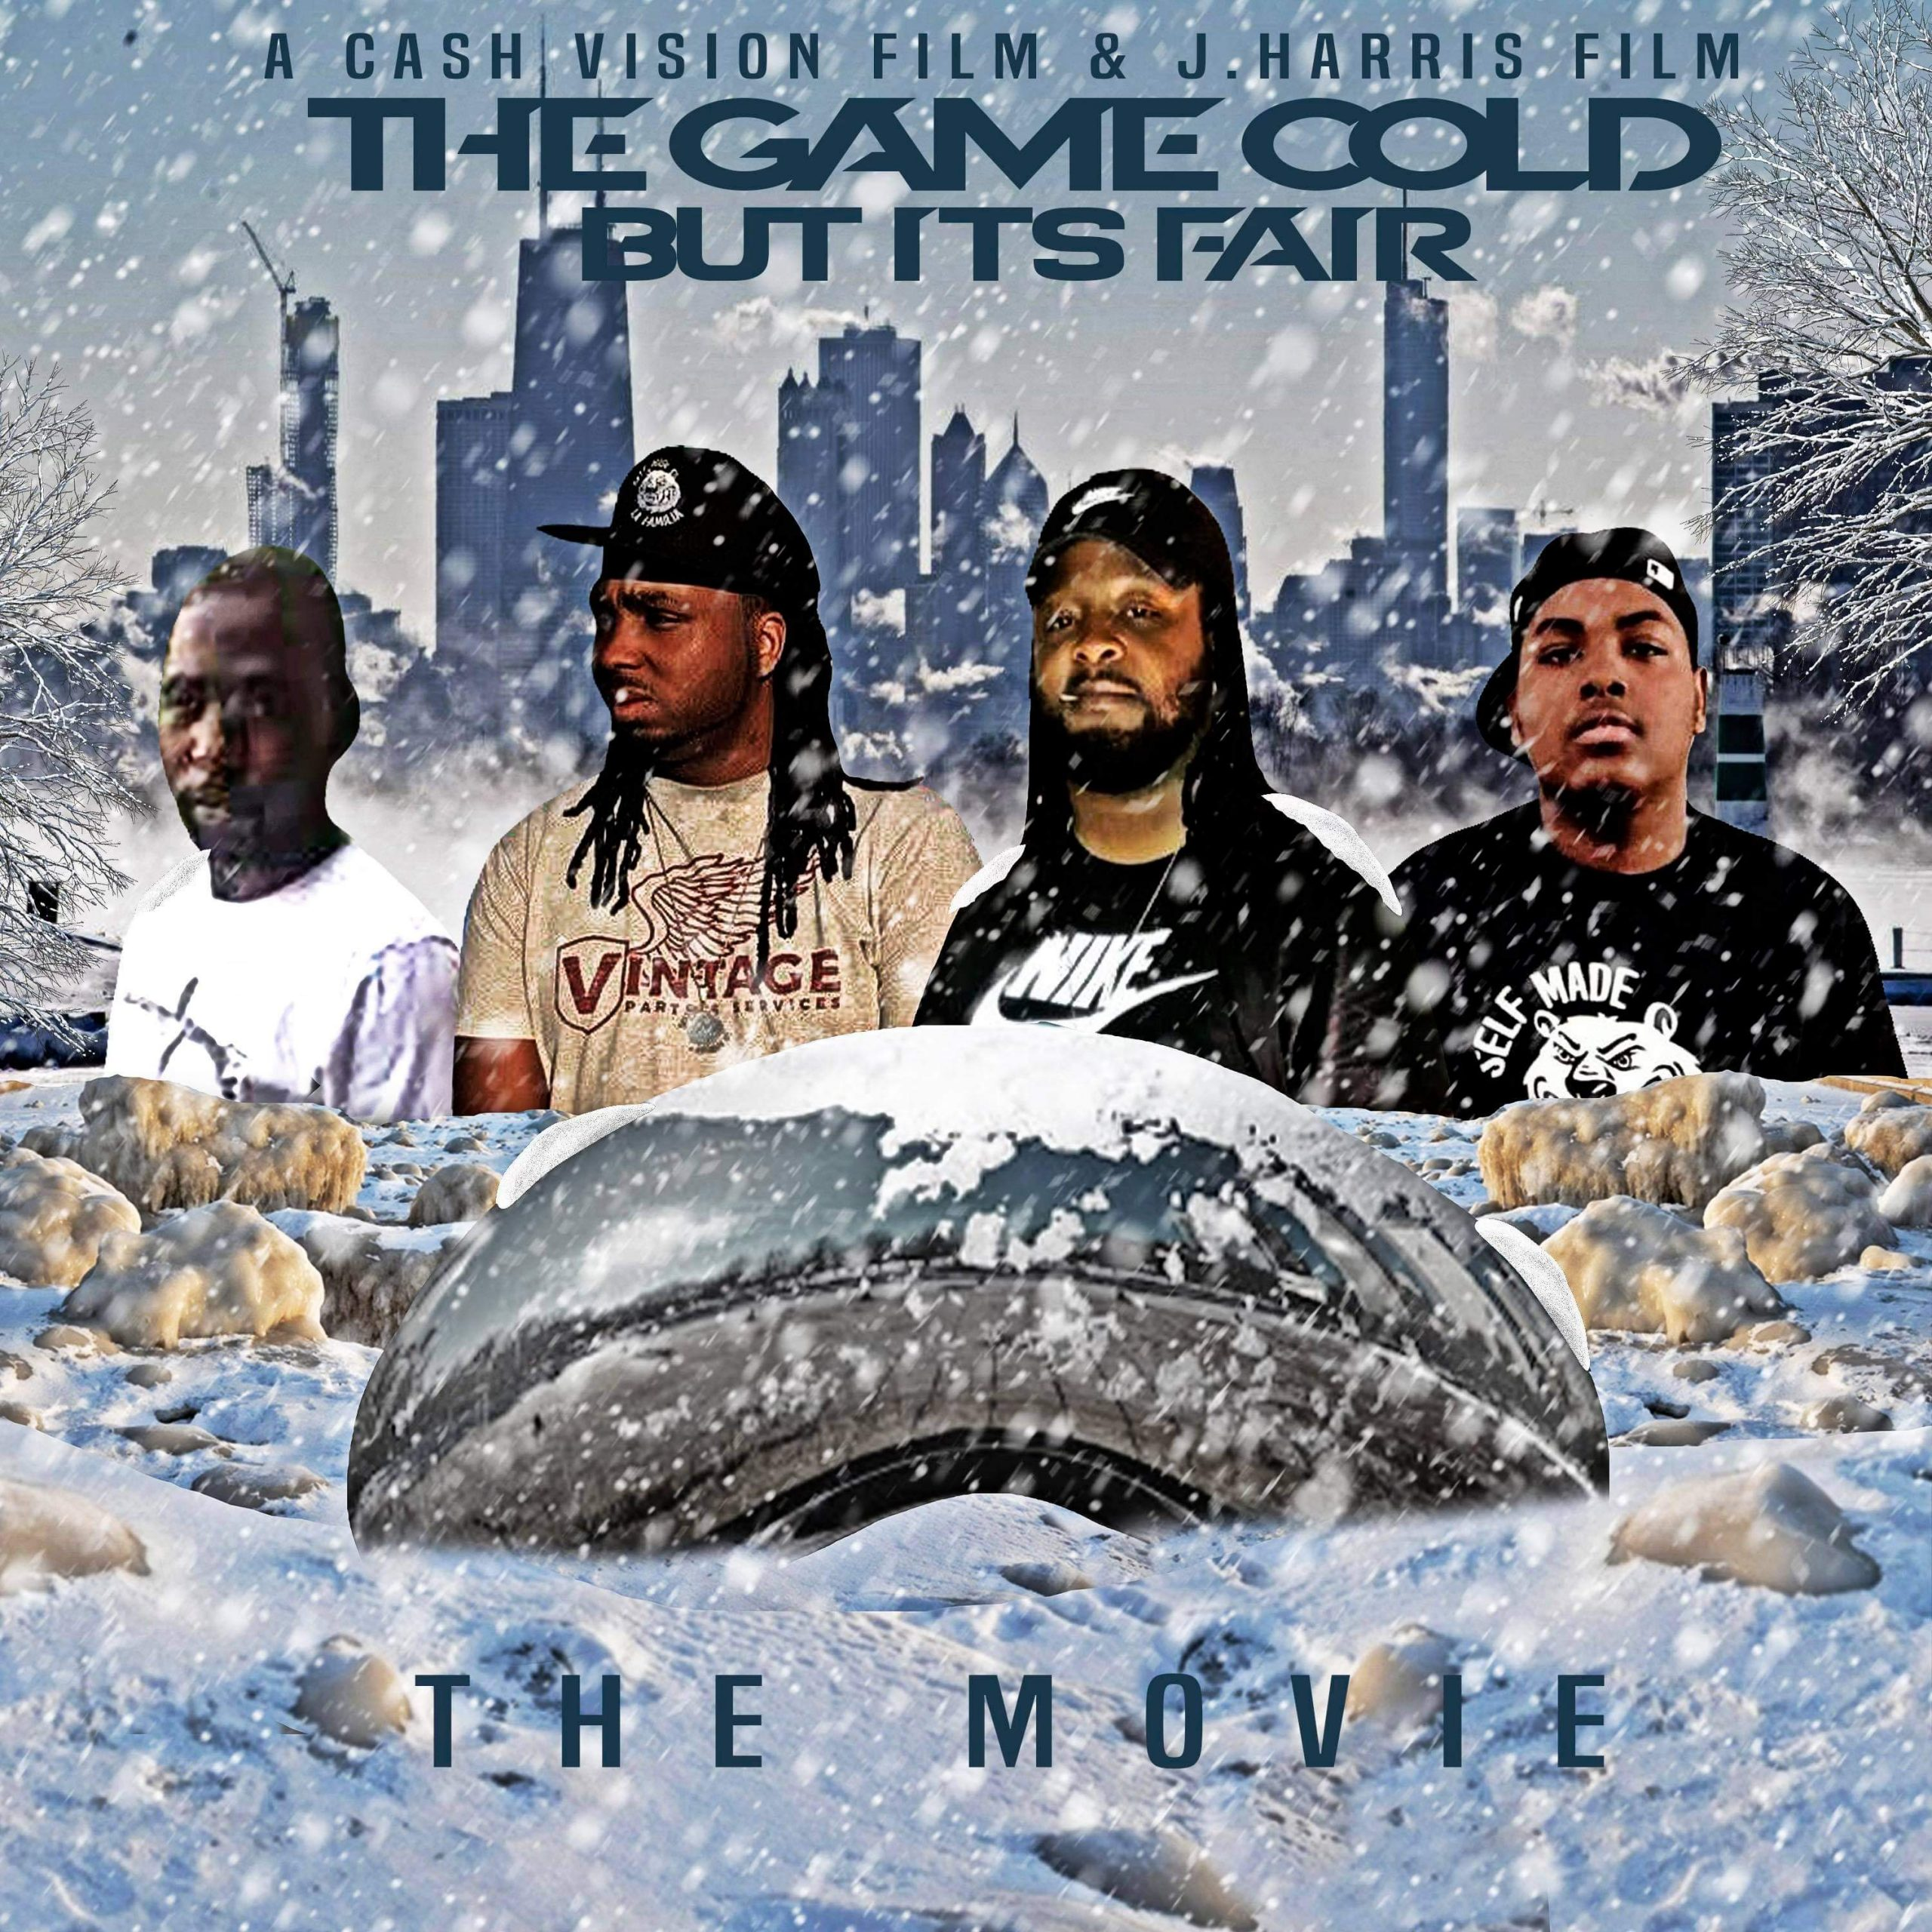 The Game Cold But it's Fair